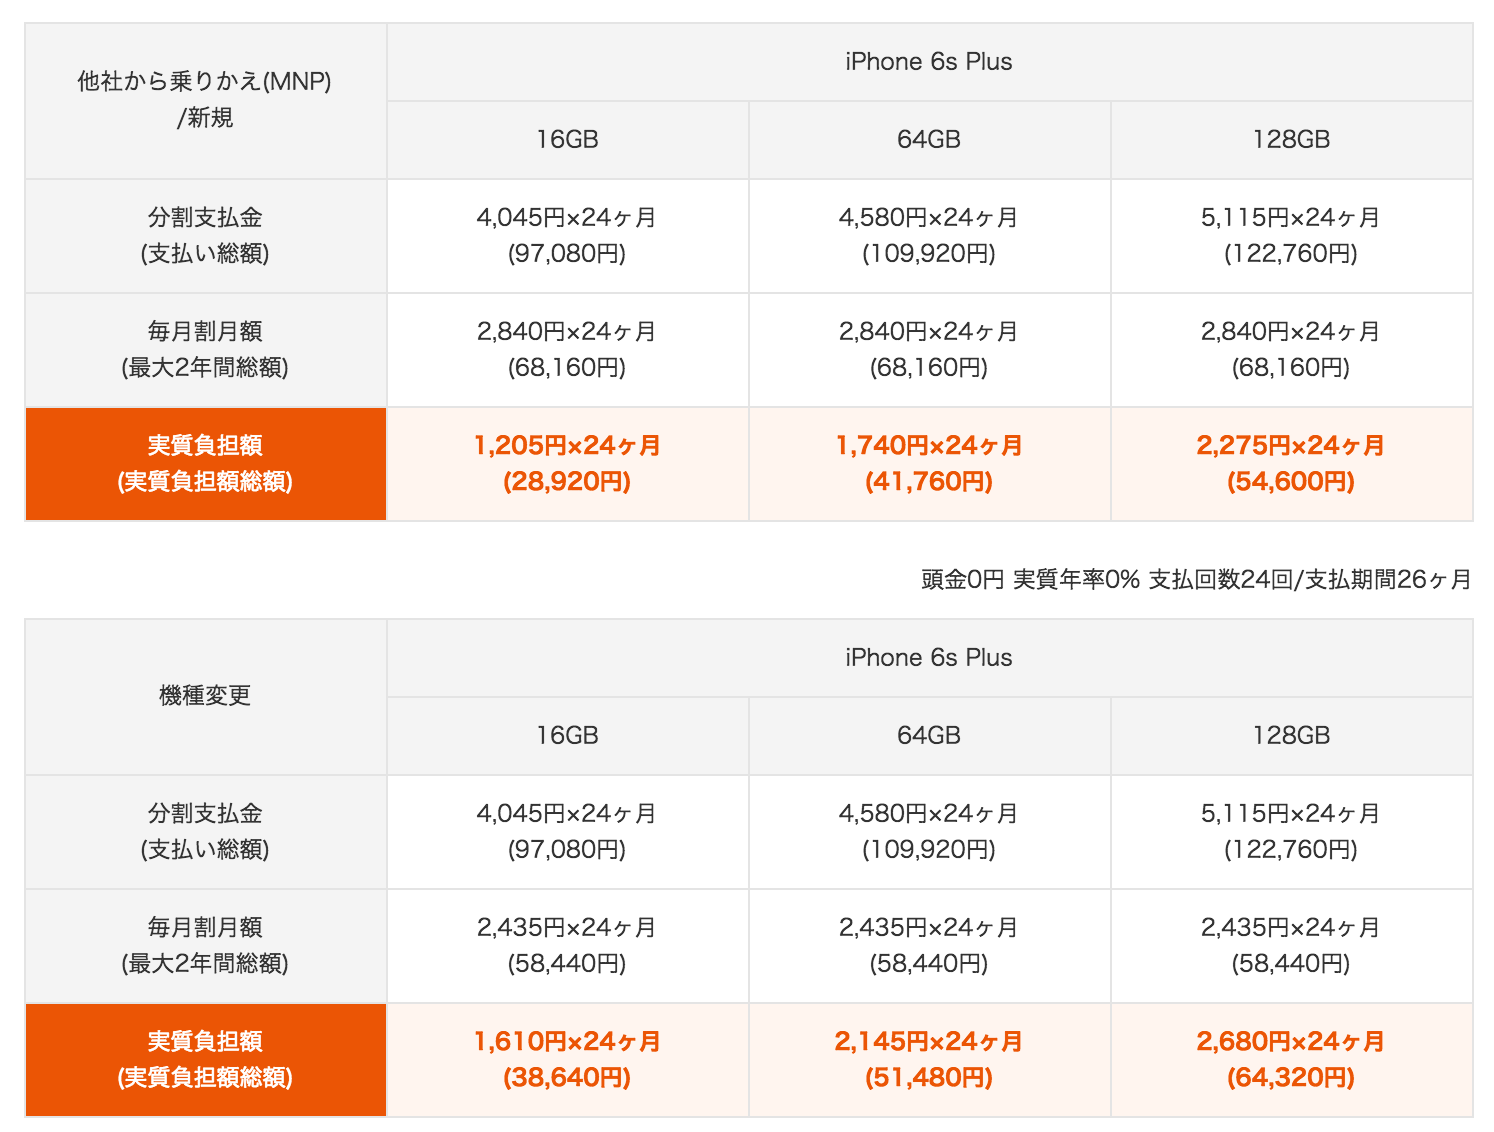 au-iphone6s-pricing-1.png